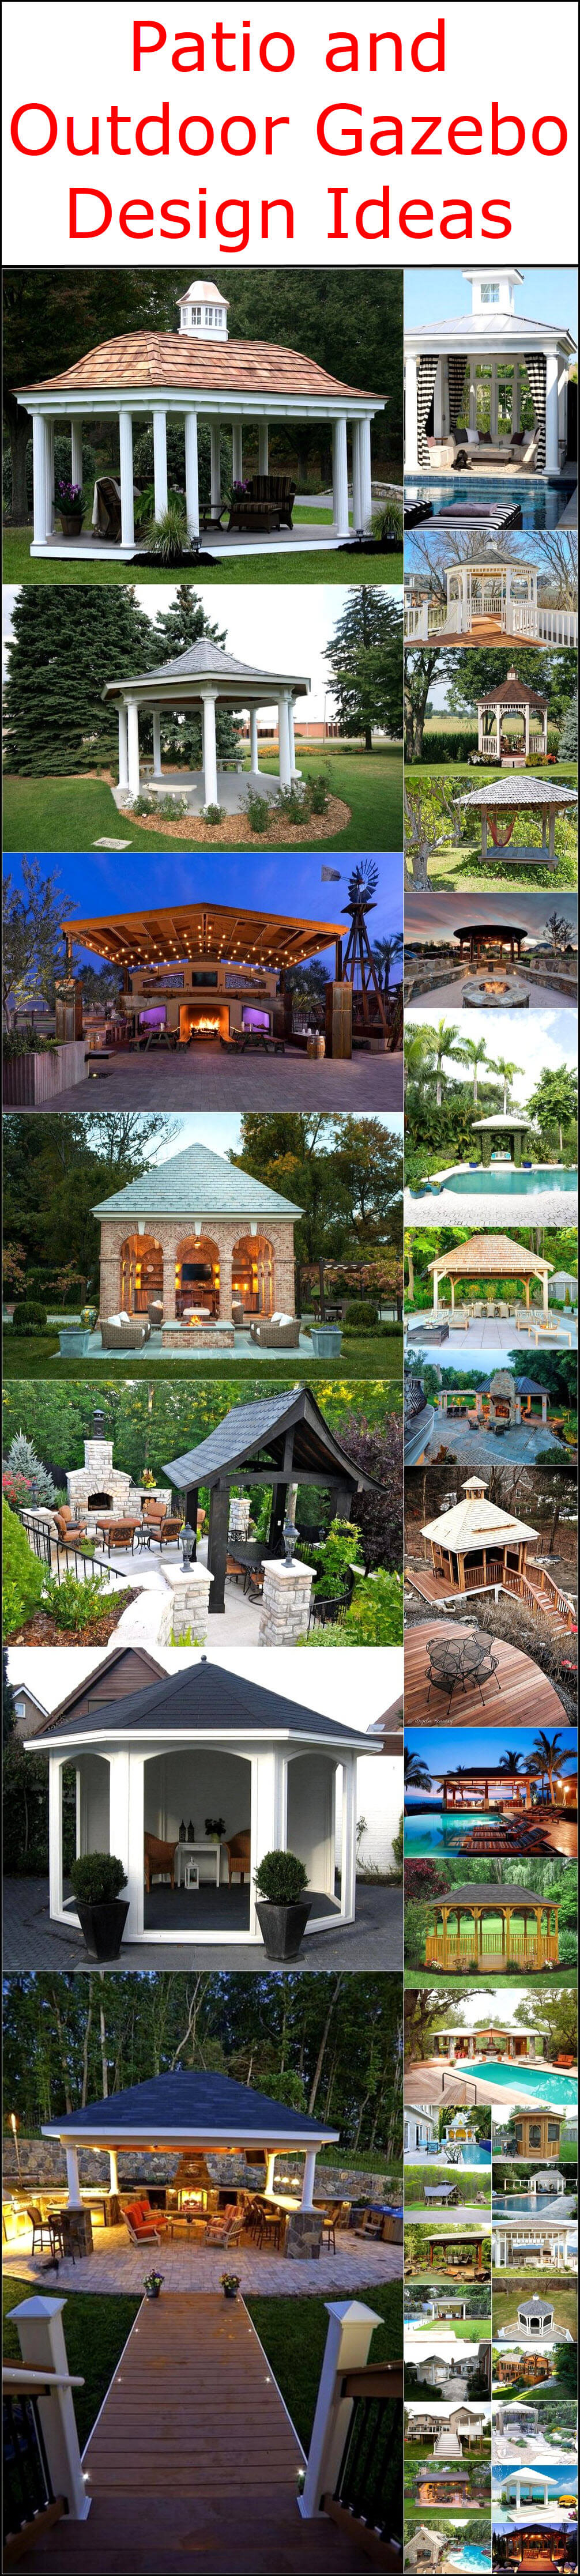 Patio and Outdoor Gazebo Design Ideas